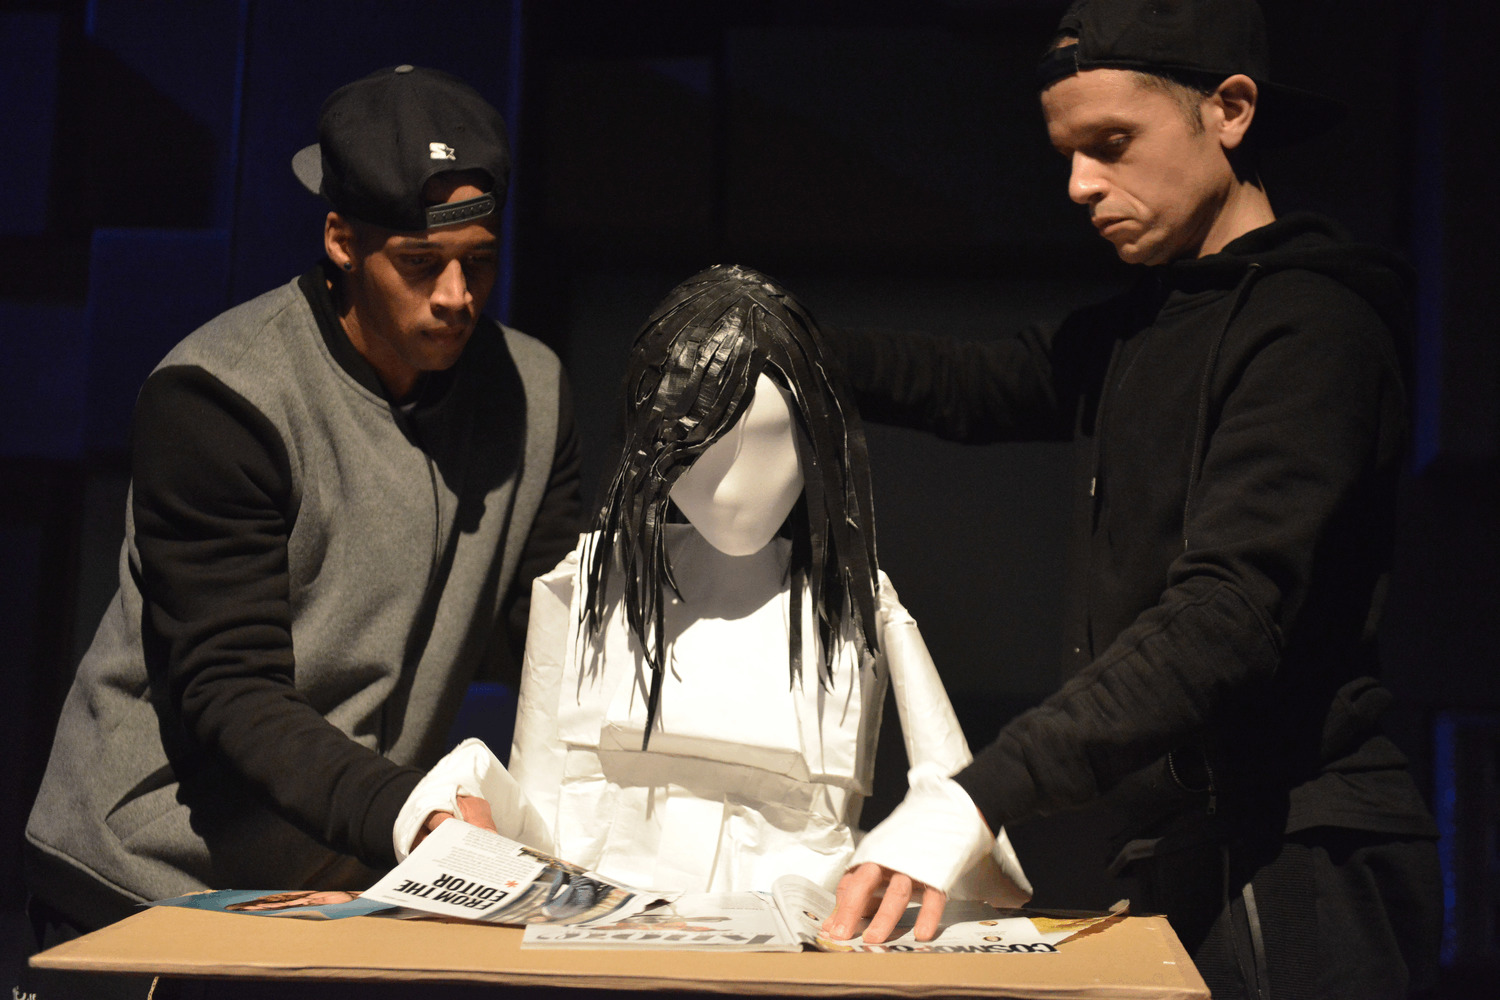 Two puppeteers manipulate a female puppet reading magazines. She is made of white paper and her hair is black.